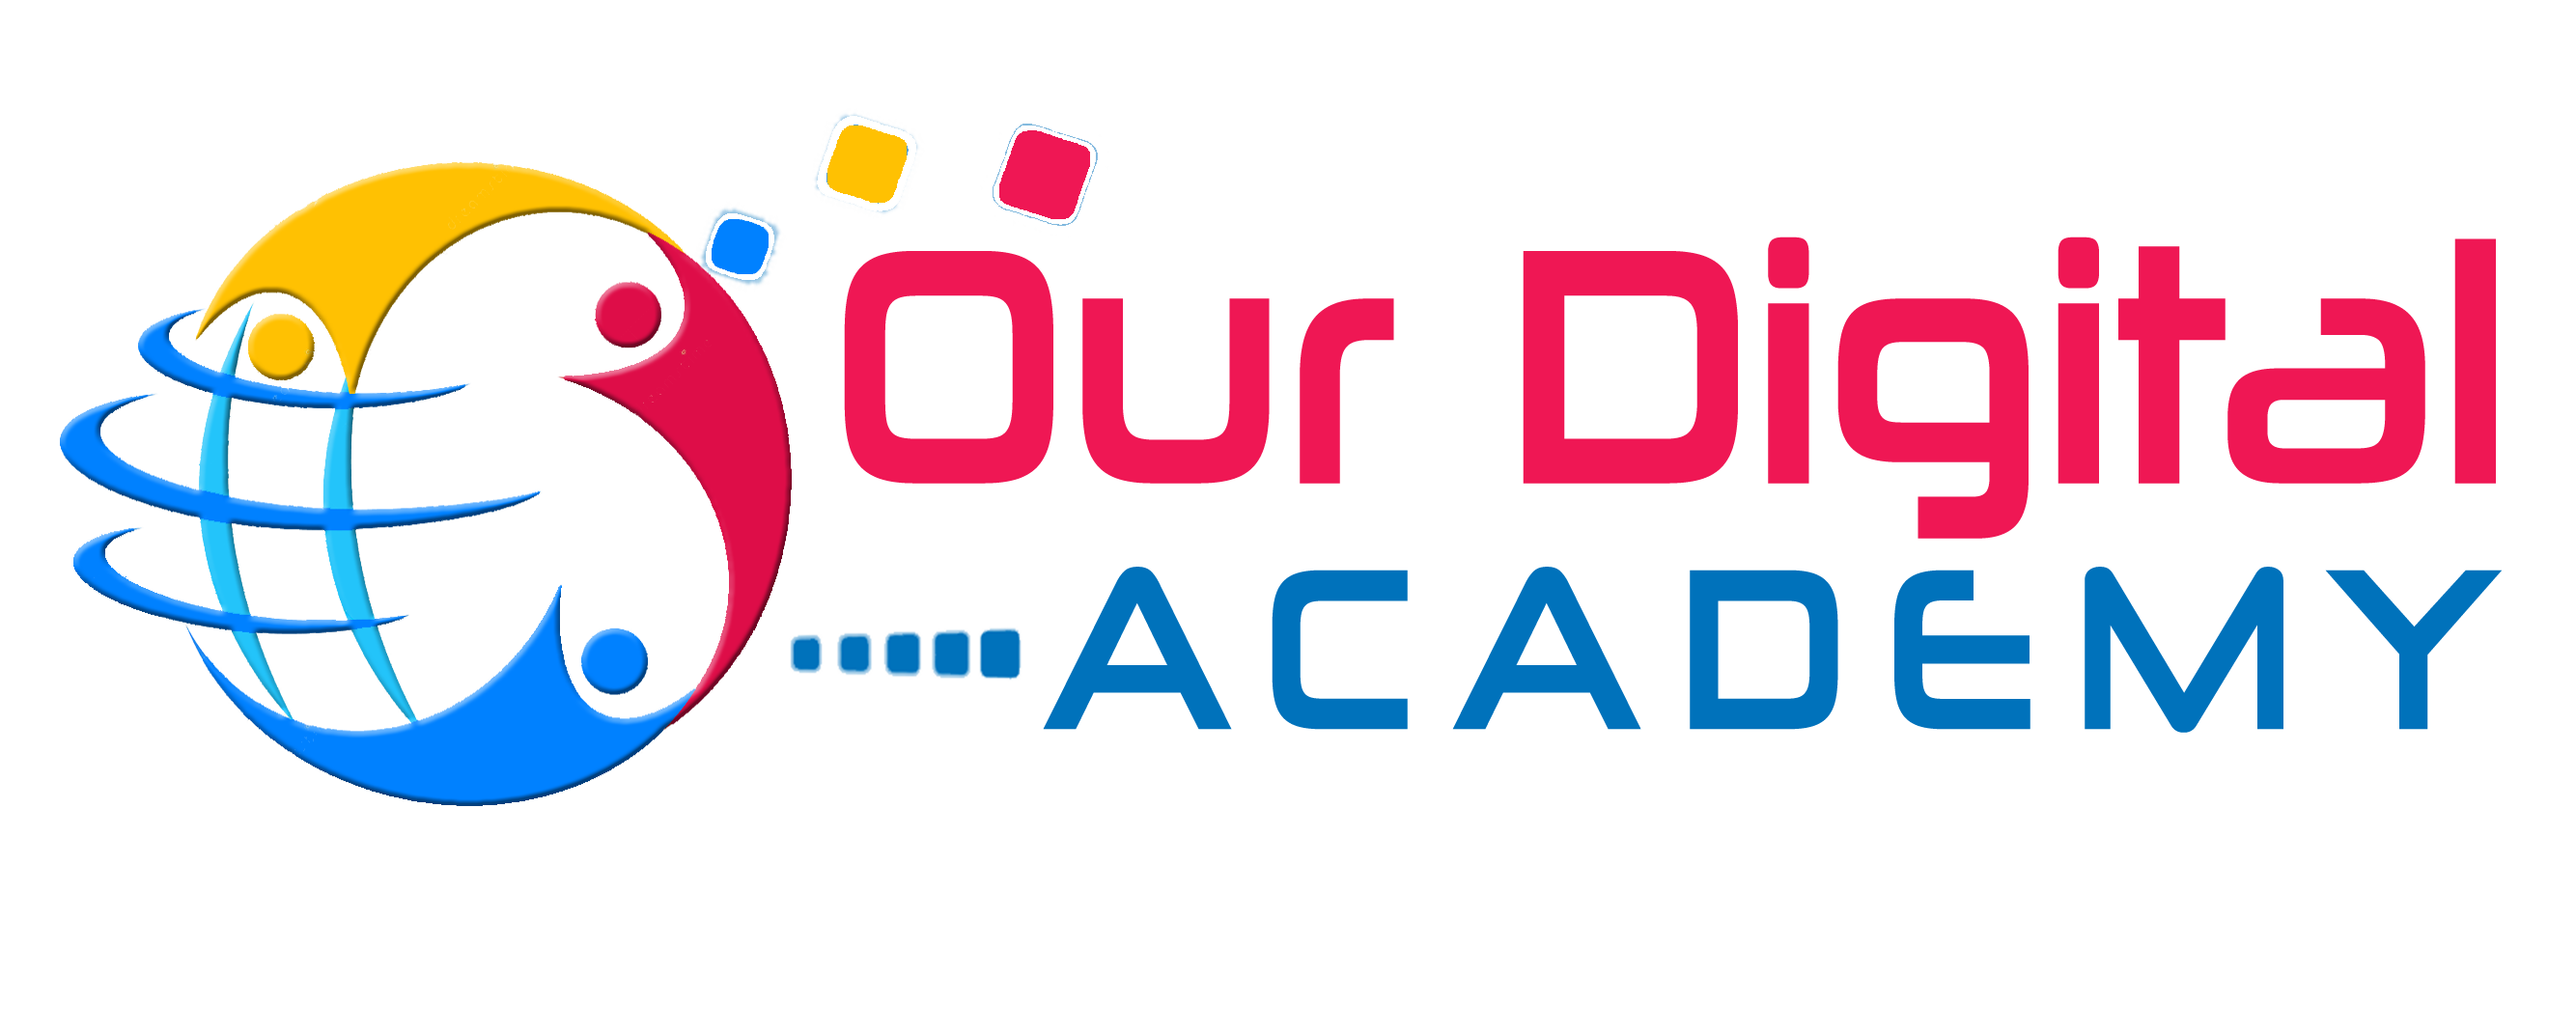 ourdigitalacademy footerlogo